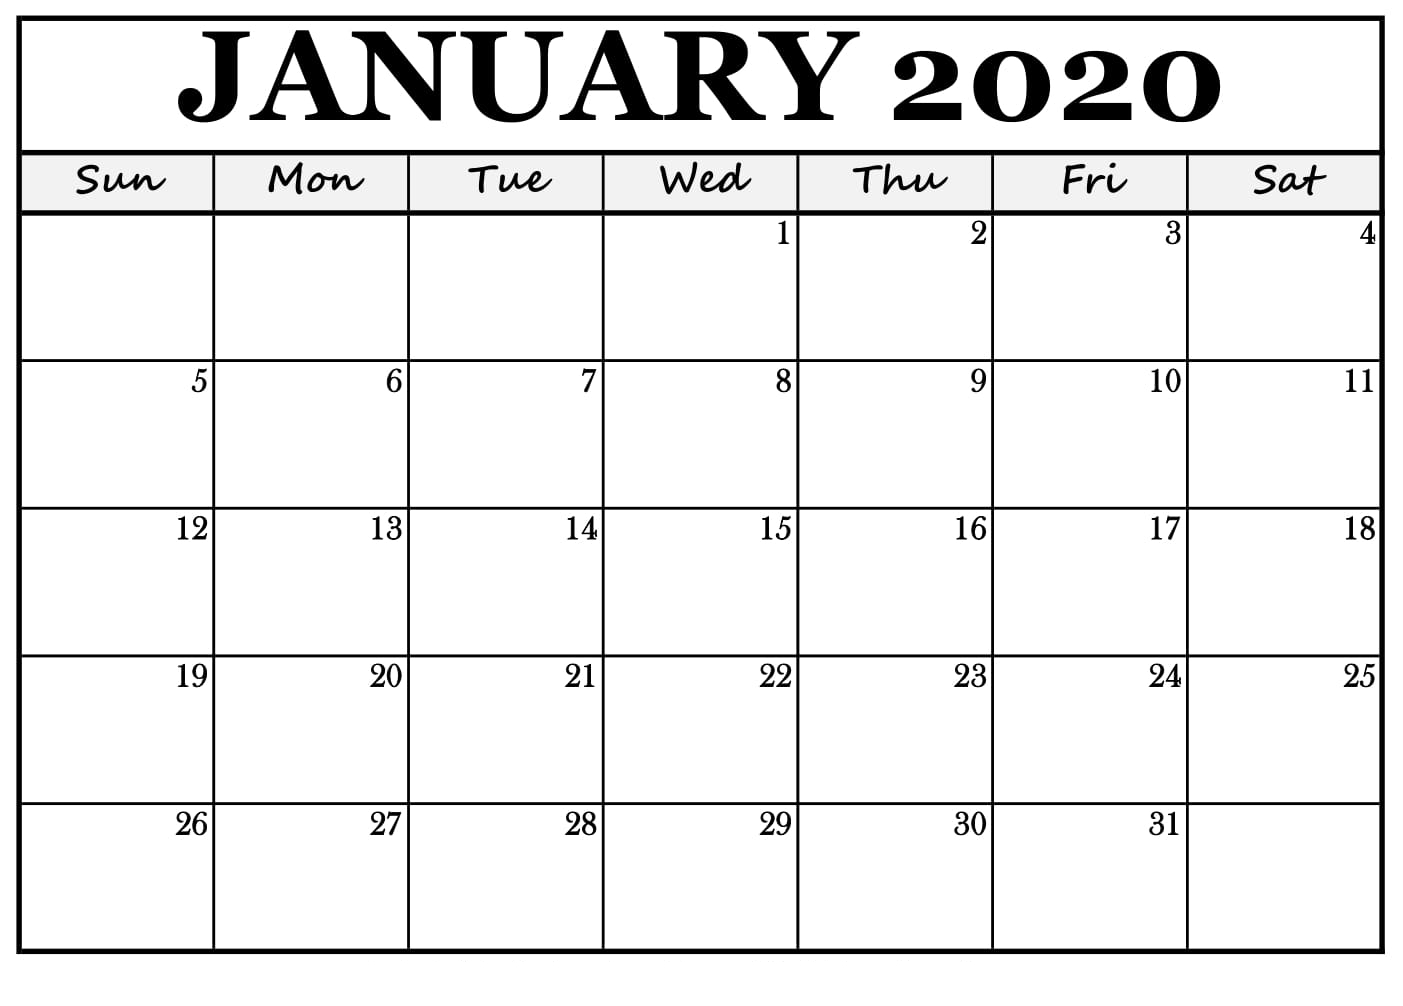 Images For January 2020 Calendar Printable | Printable Calendar for January 2020 Calendar